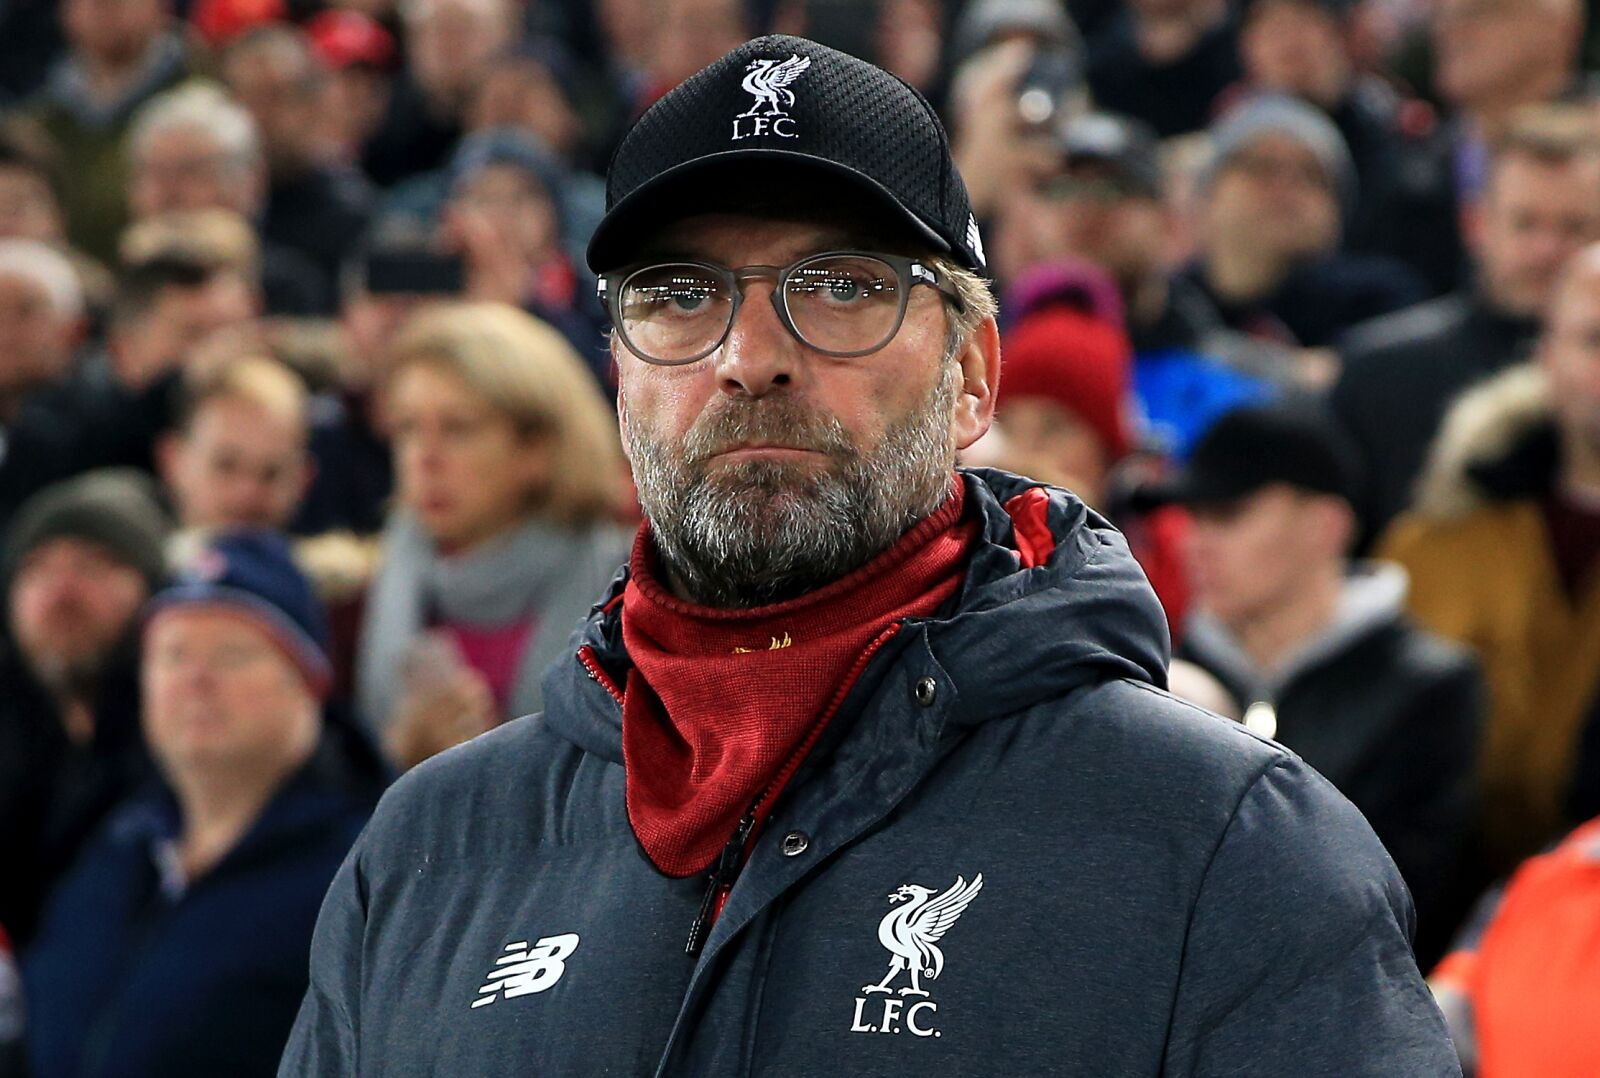 Liverpool: Klopp tipped to make ambitious move for Man City star